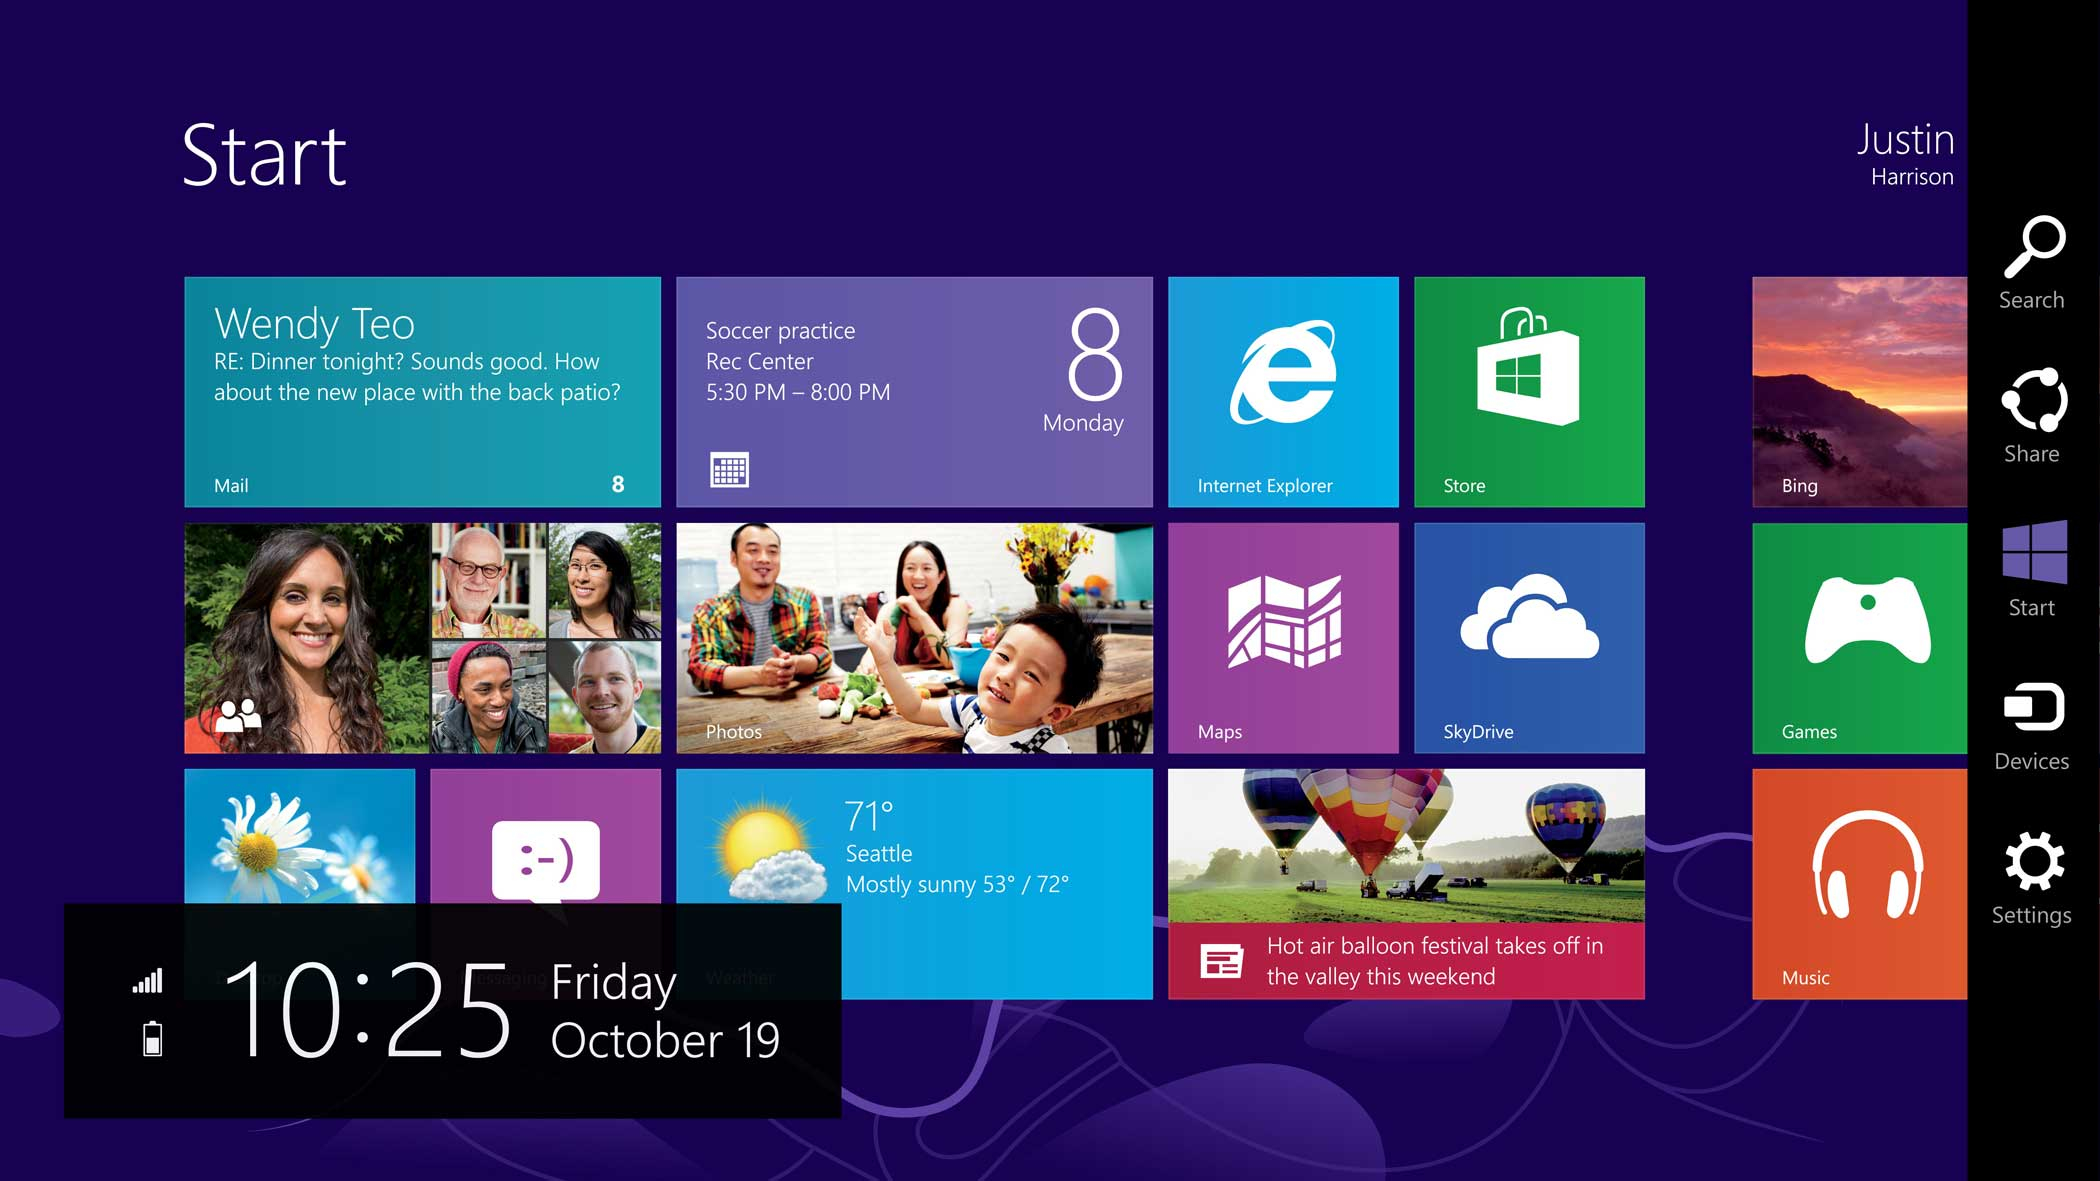 Windows 8 released on October 26, 2012, attempted to radically redesign the start screen with  Live Tiles,  a grid of commonly used apps designed for easy touching. The vast majority of Windows users continued to use the desktop PC's, however, and found the redesign, particularly the loss of the Start button, disorienting.